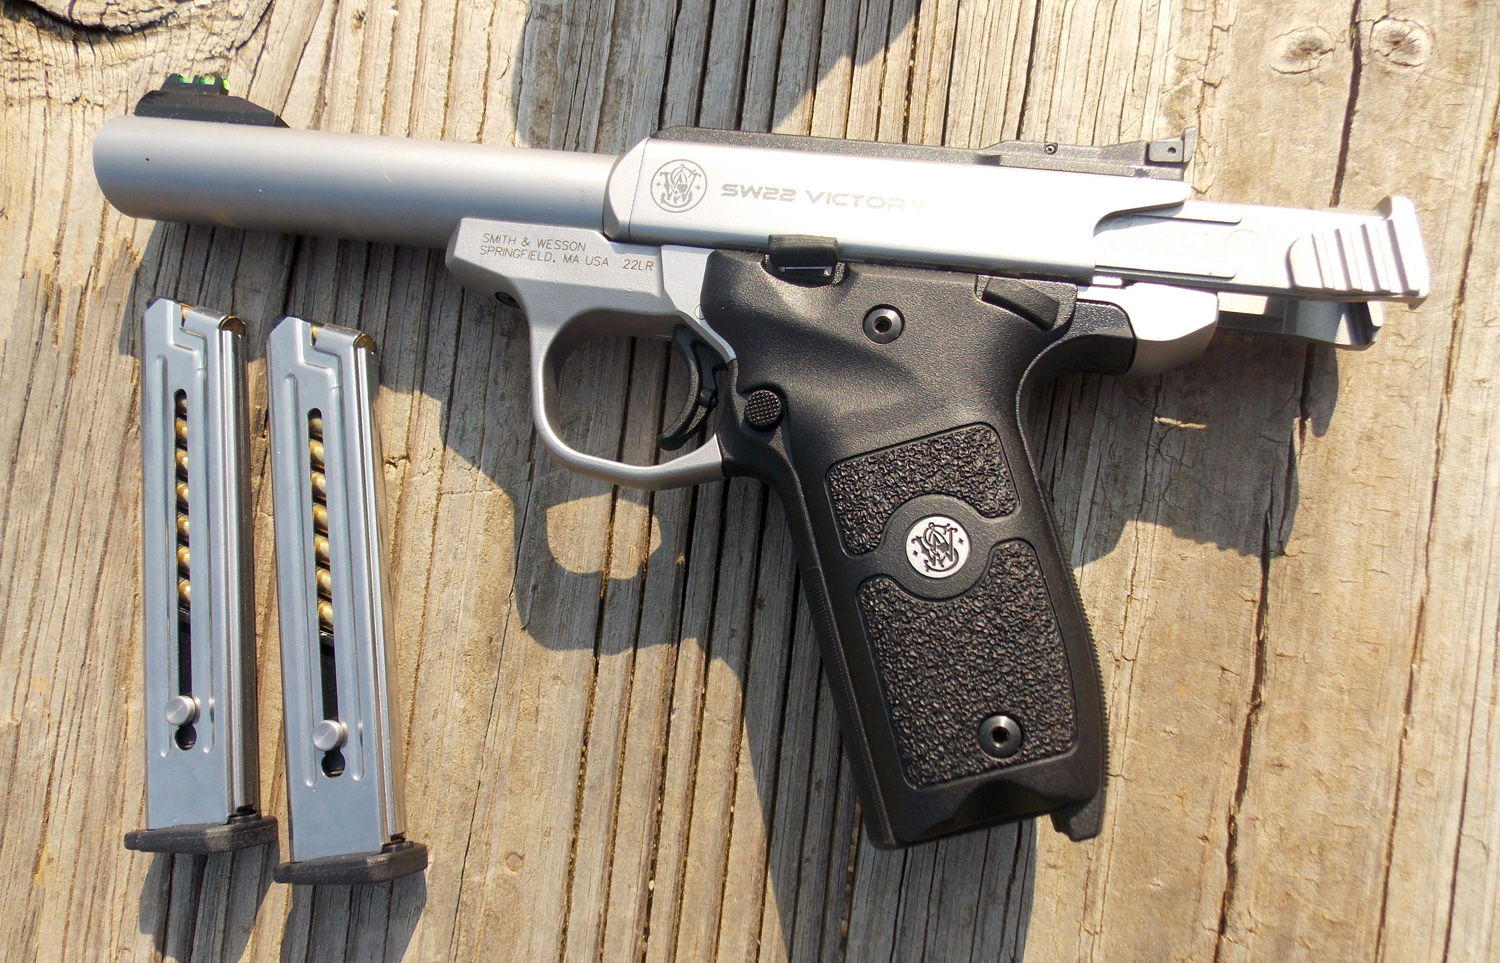 Smith and Wesson Victory 22 pistol with slide locked back and two magazines